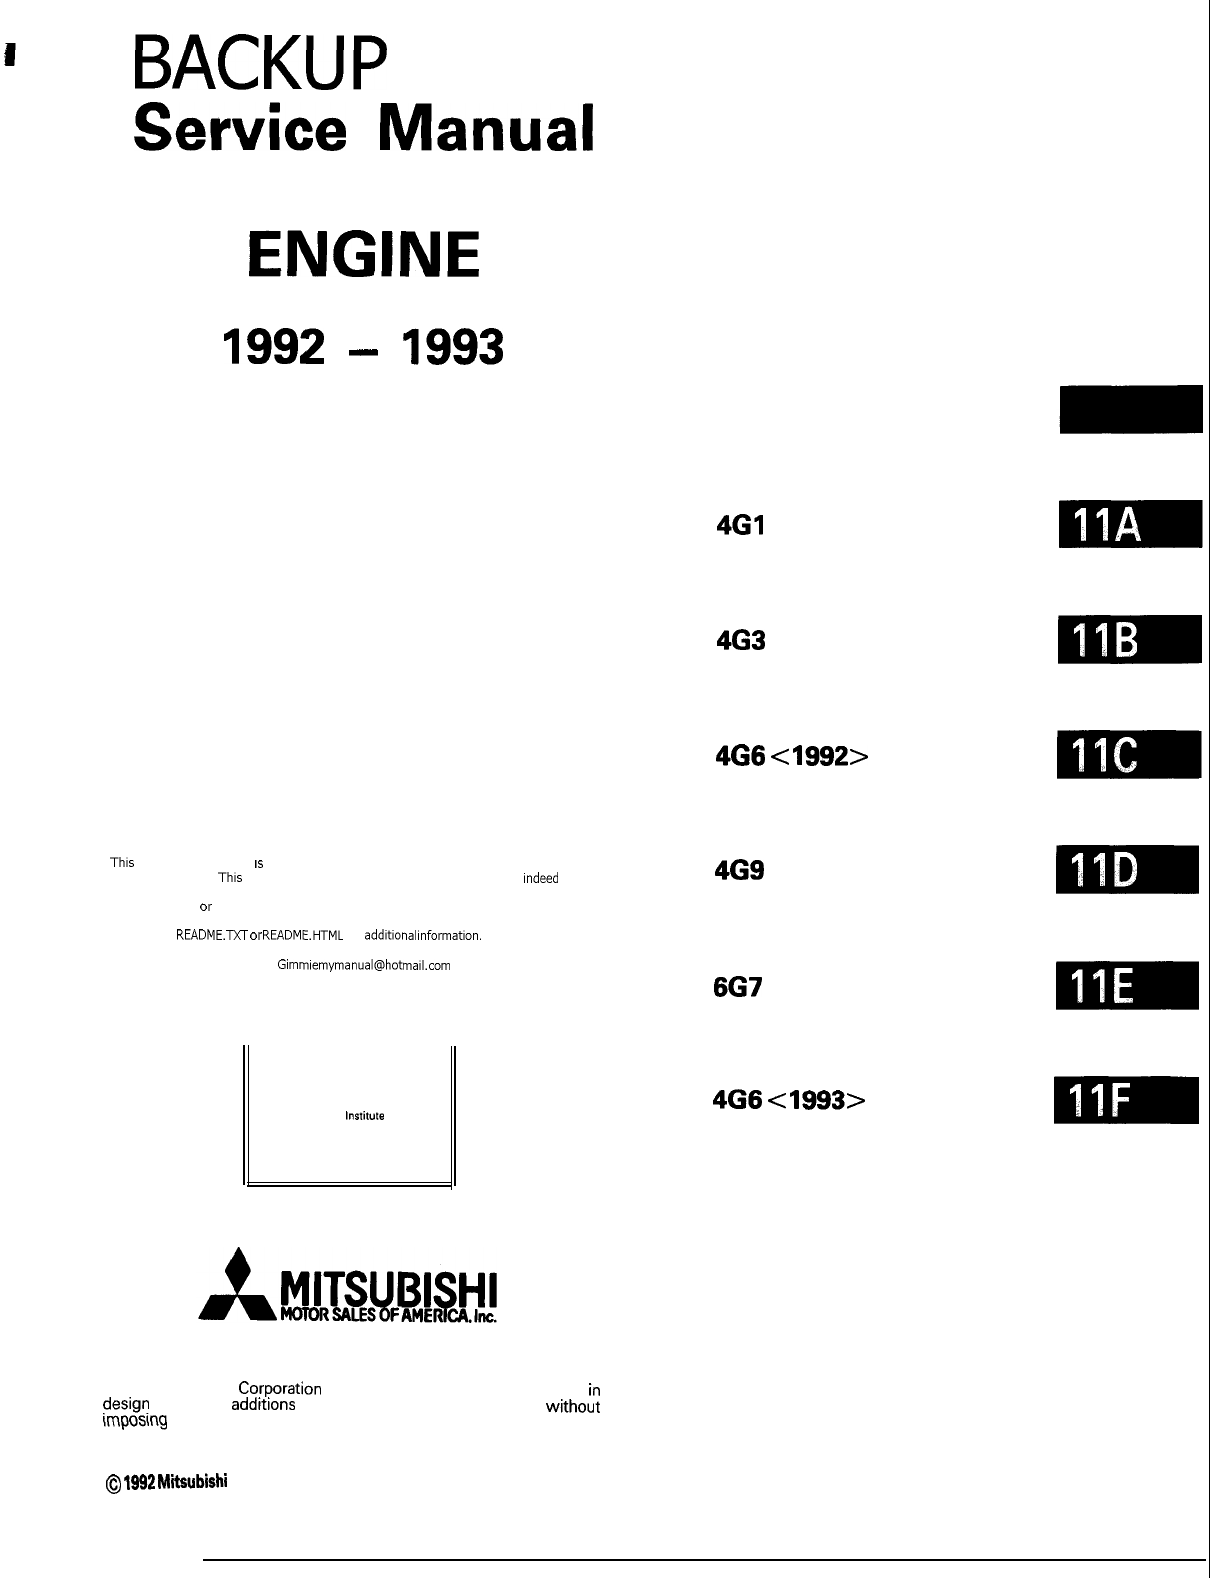 Mitsubishi Galant Workshop Manual Back Up PDF